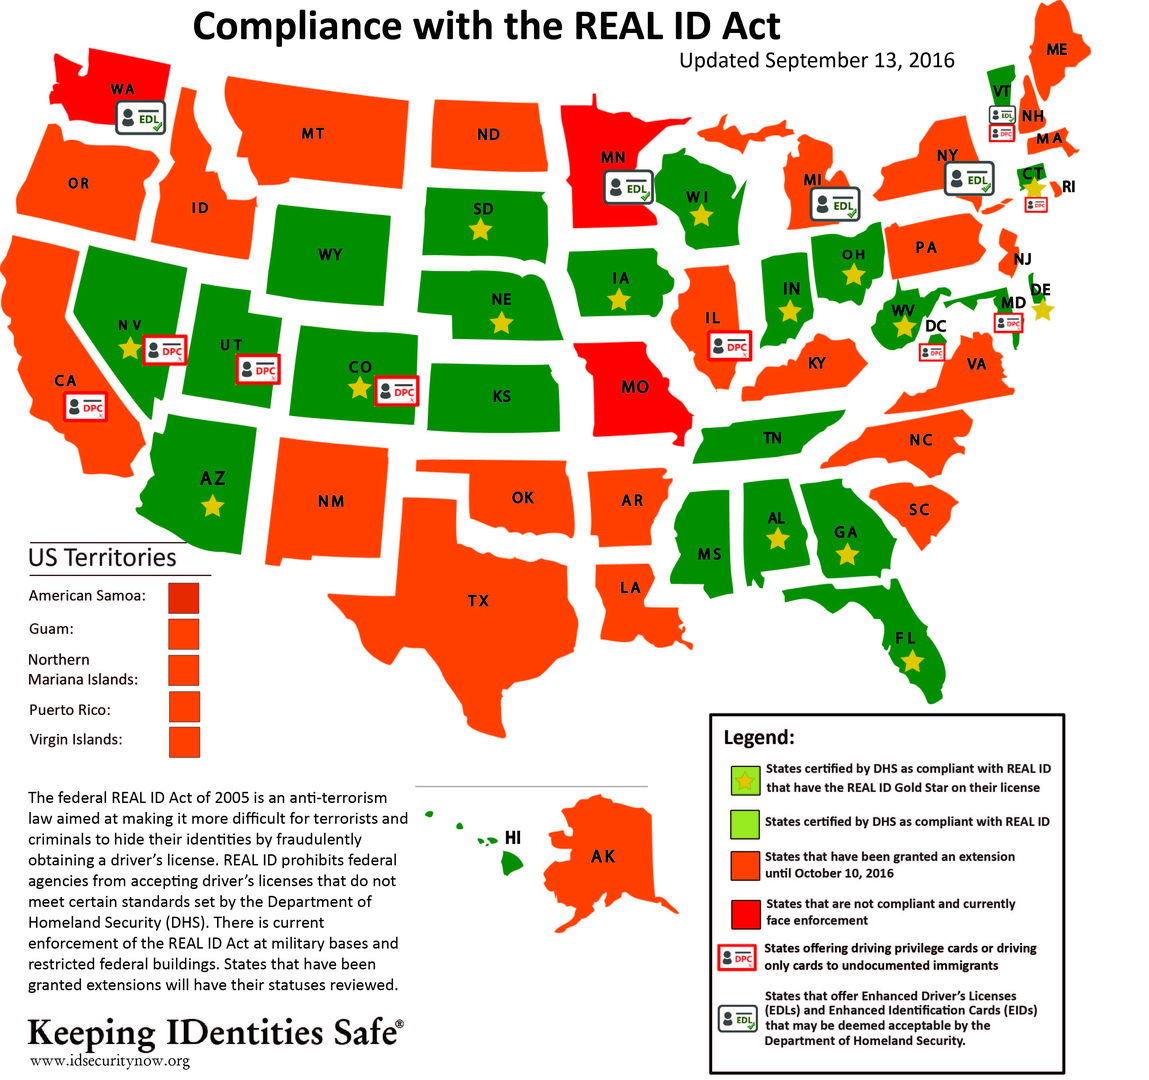 What is your opinion on the National Real ID Act for 2008?